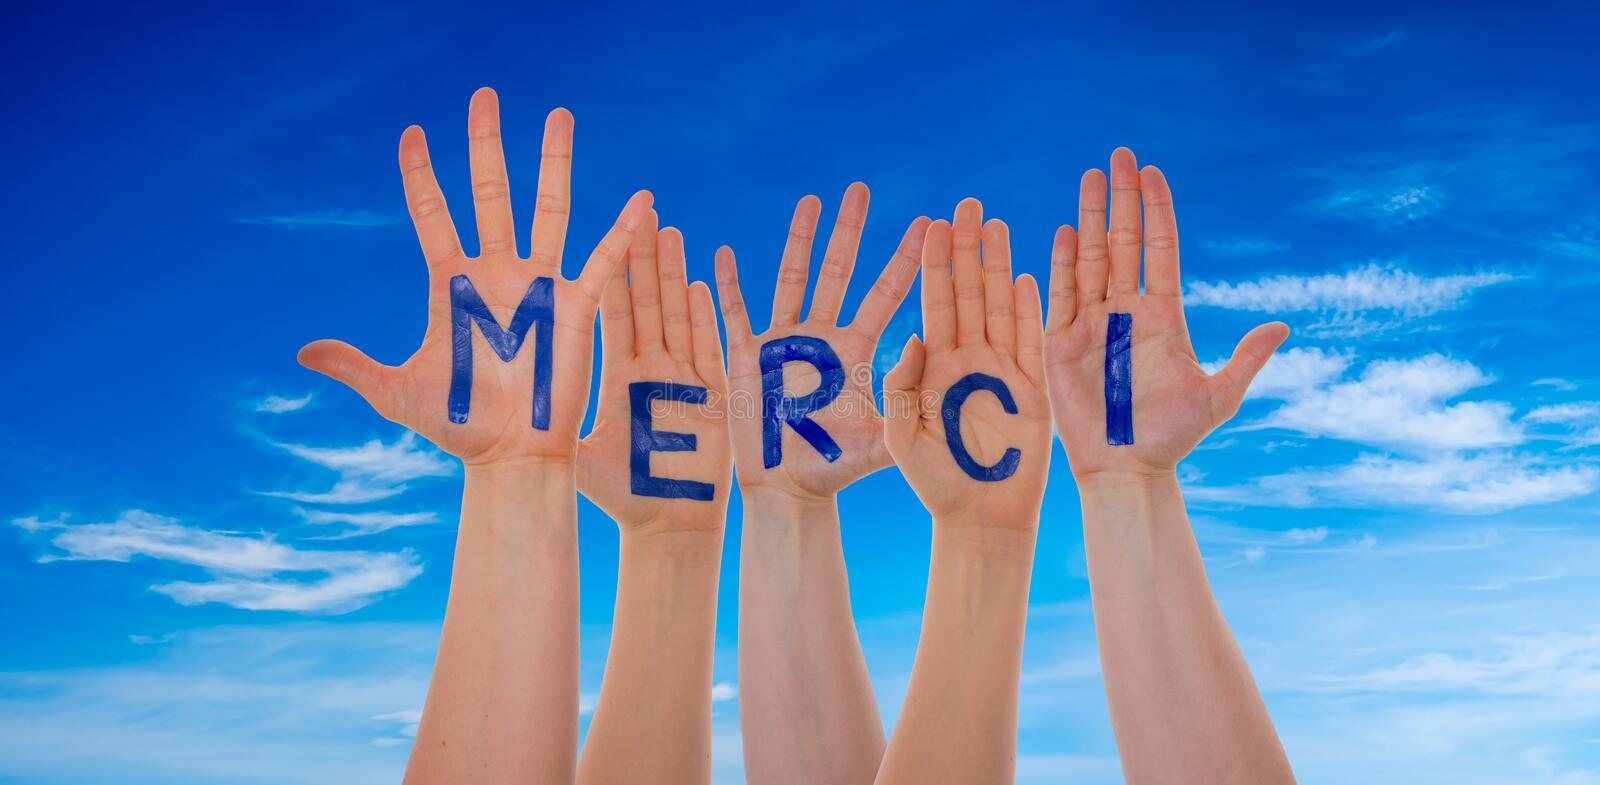 Many Hands Building Merci Means Thank You, Blue Sky stock photography